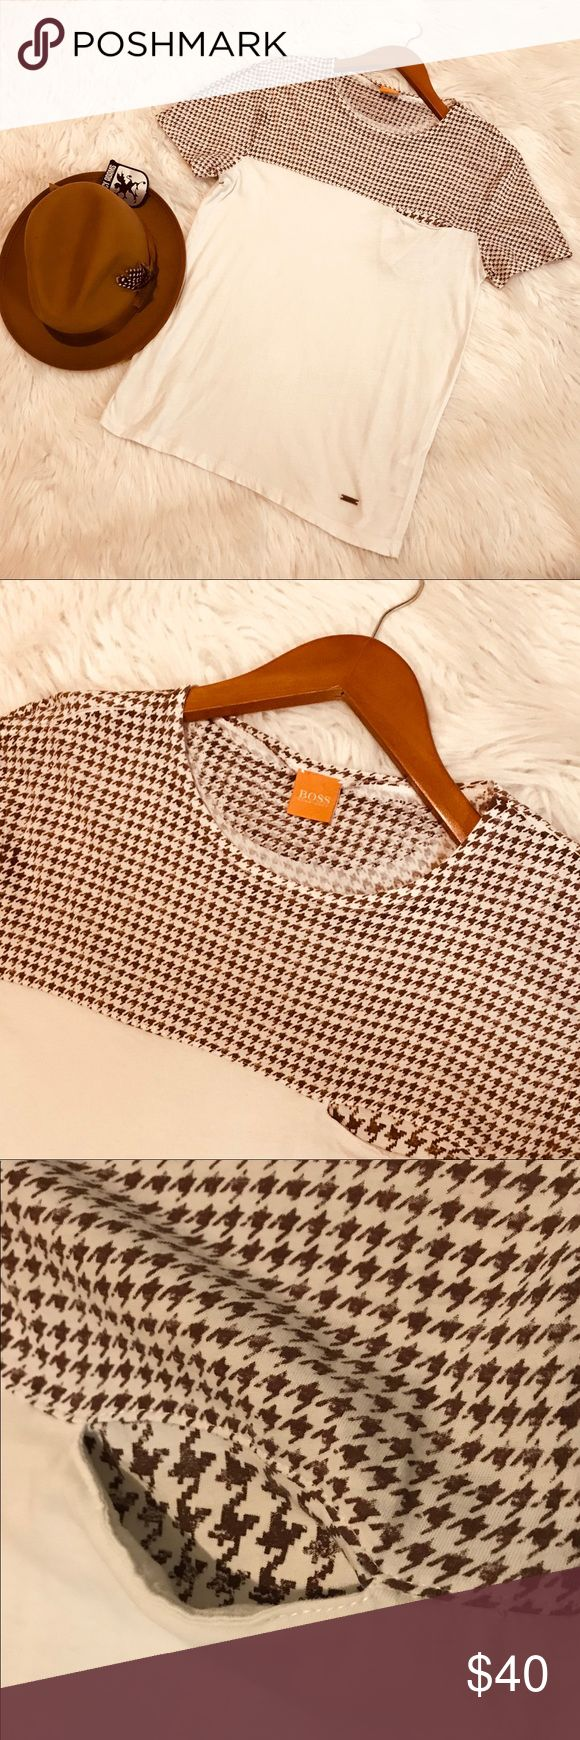 Men's Hugo Boss Tee Boss Hugo Boss Orange line. White with houndstooth brown print on top and an open chest pocket. Slim fit. EUC. Hugo Boss Shirts Tees - Short Sleeve